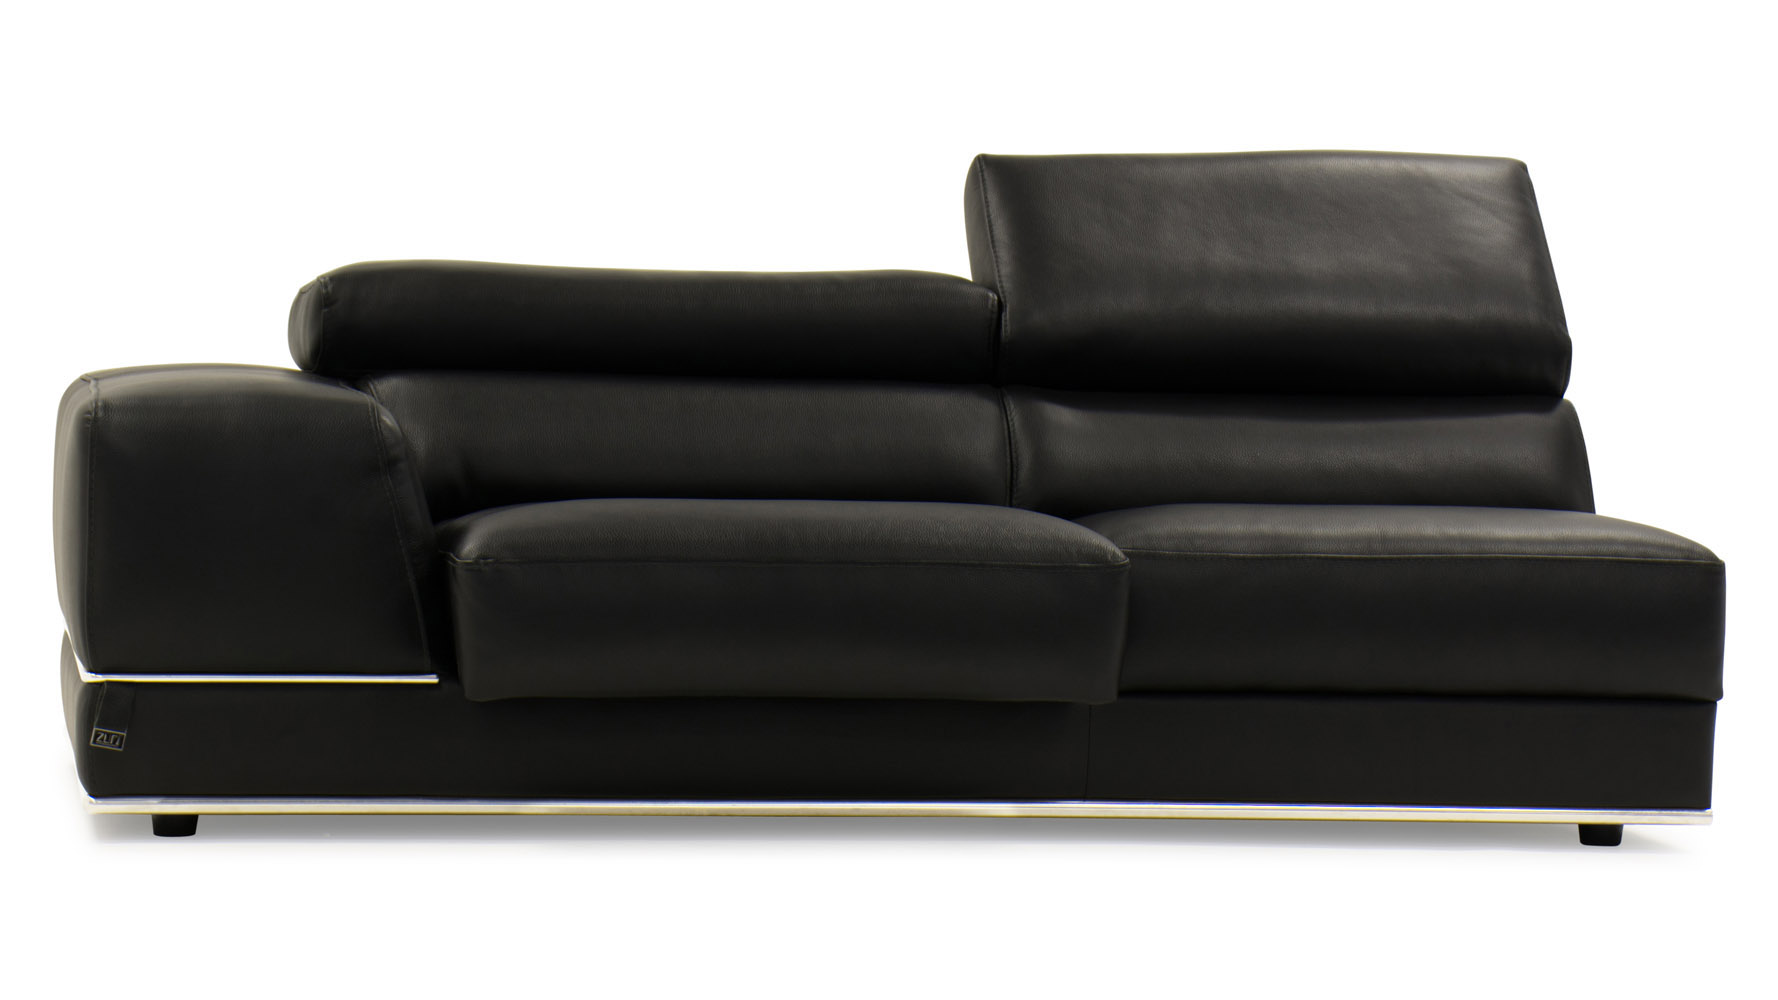 2 Seater Sofa Recliner Images